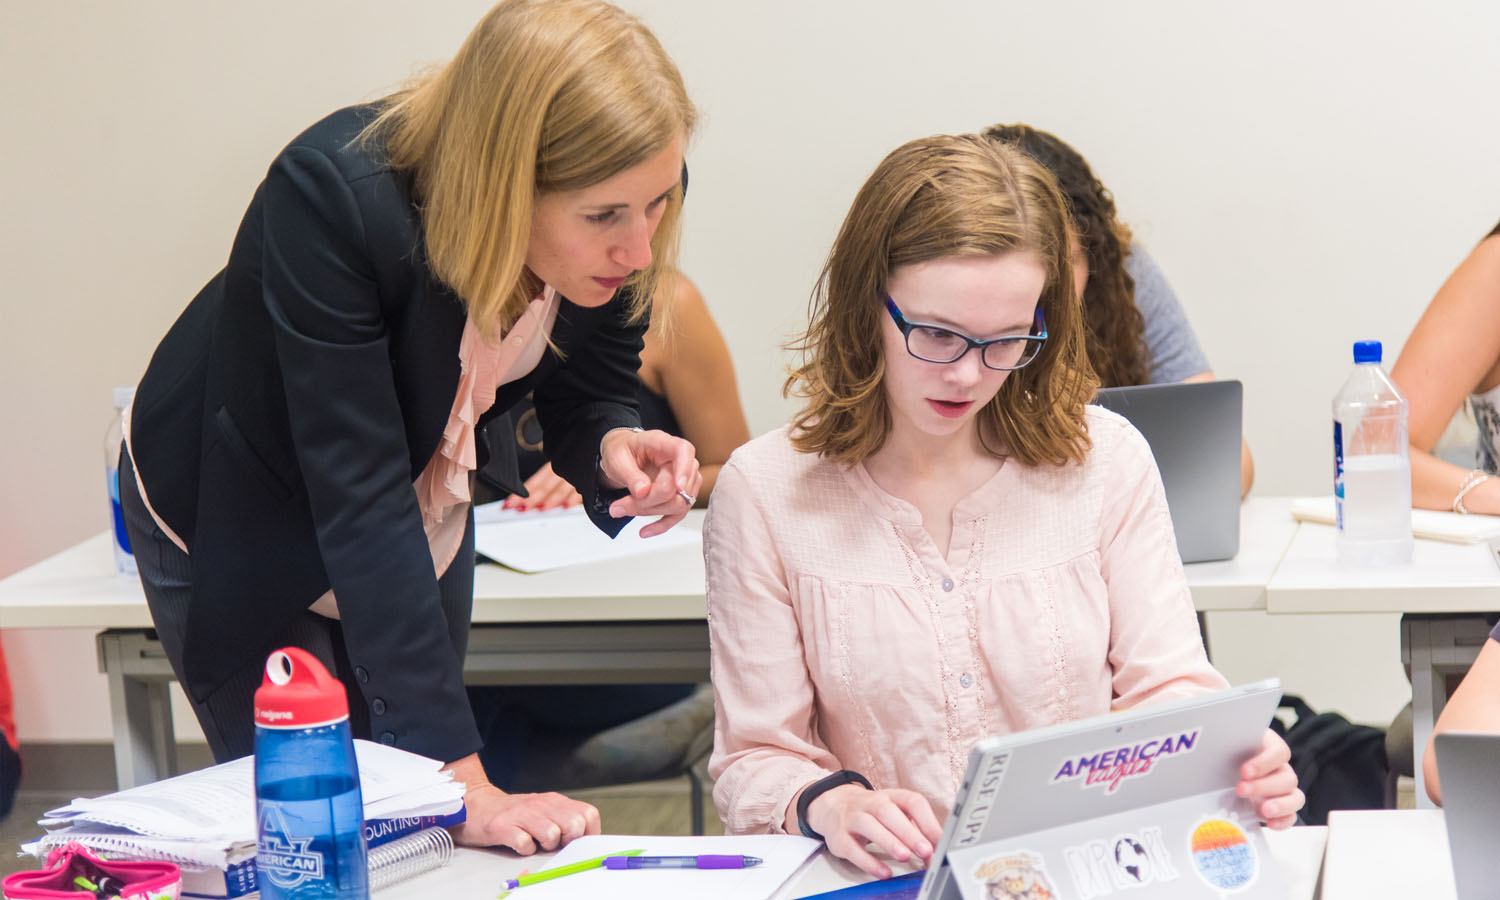 Professor helping student in accounting class